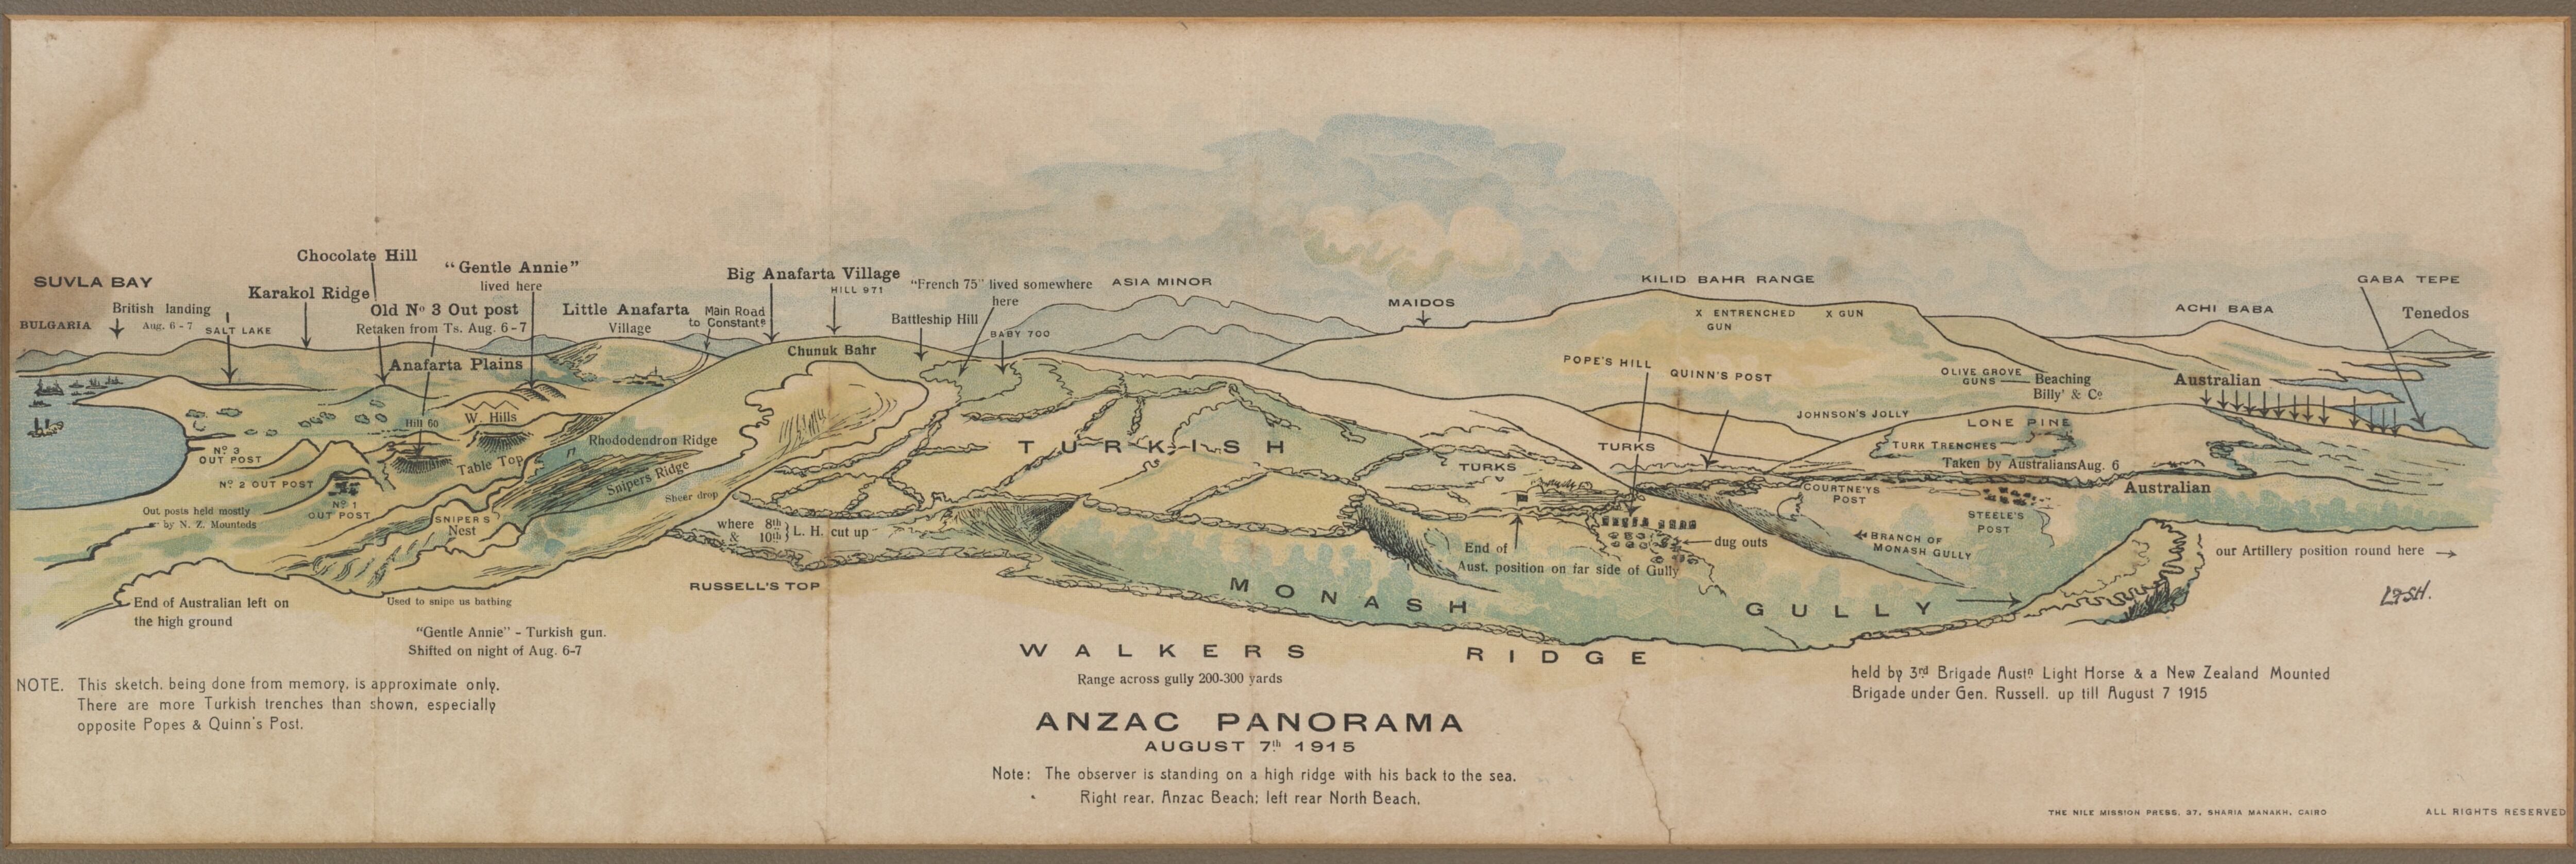 Map of gallipoli peninsula turkey showing the dispositions of the map of gallipoli peninsula turkey showing the dispositions of the australian forces on 7 august gumiabroncs Image collections